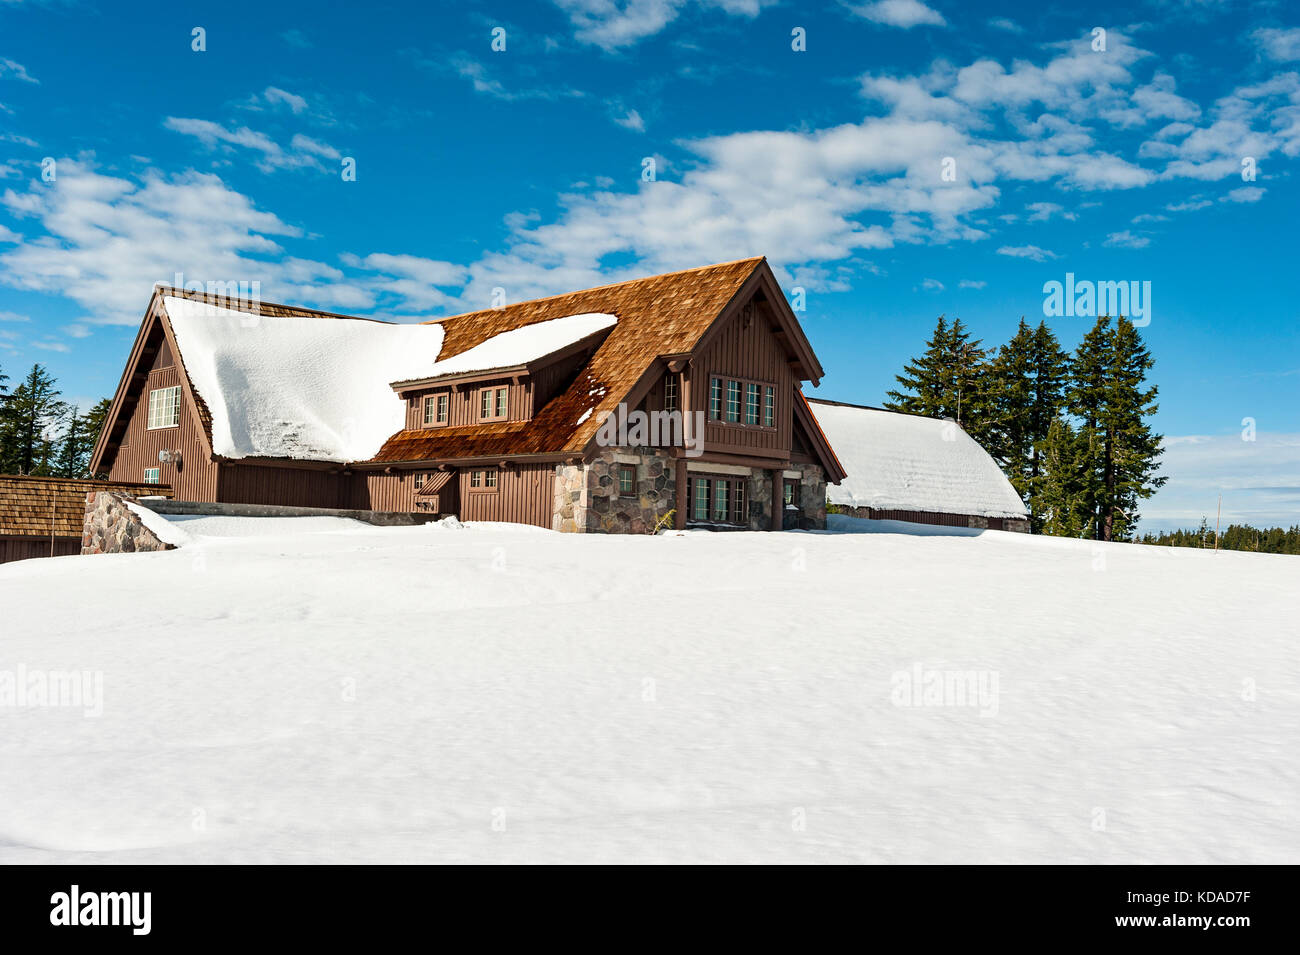 Crater Lake National Park Rim Village Visitor Center in winter, Oregon, United States of America, USA - Stock Image